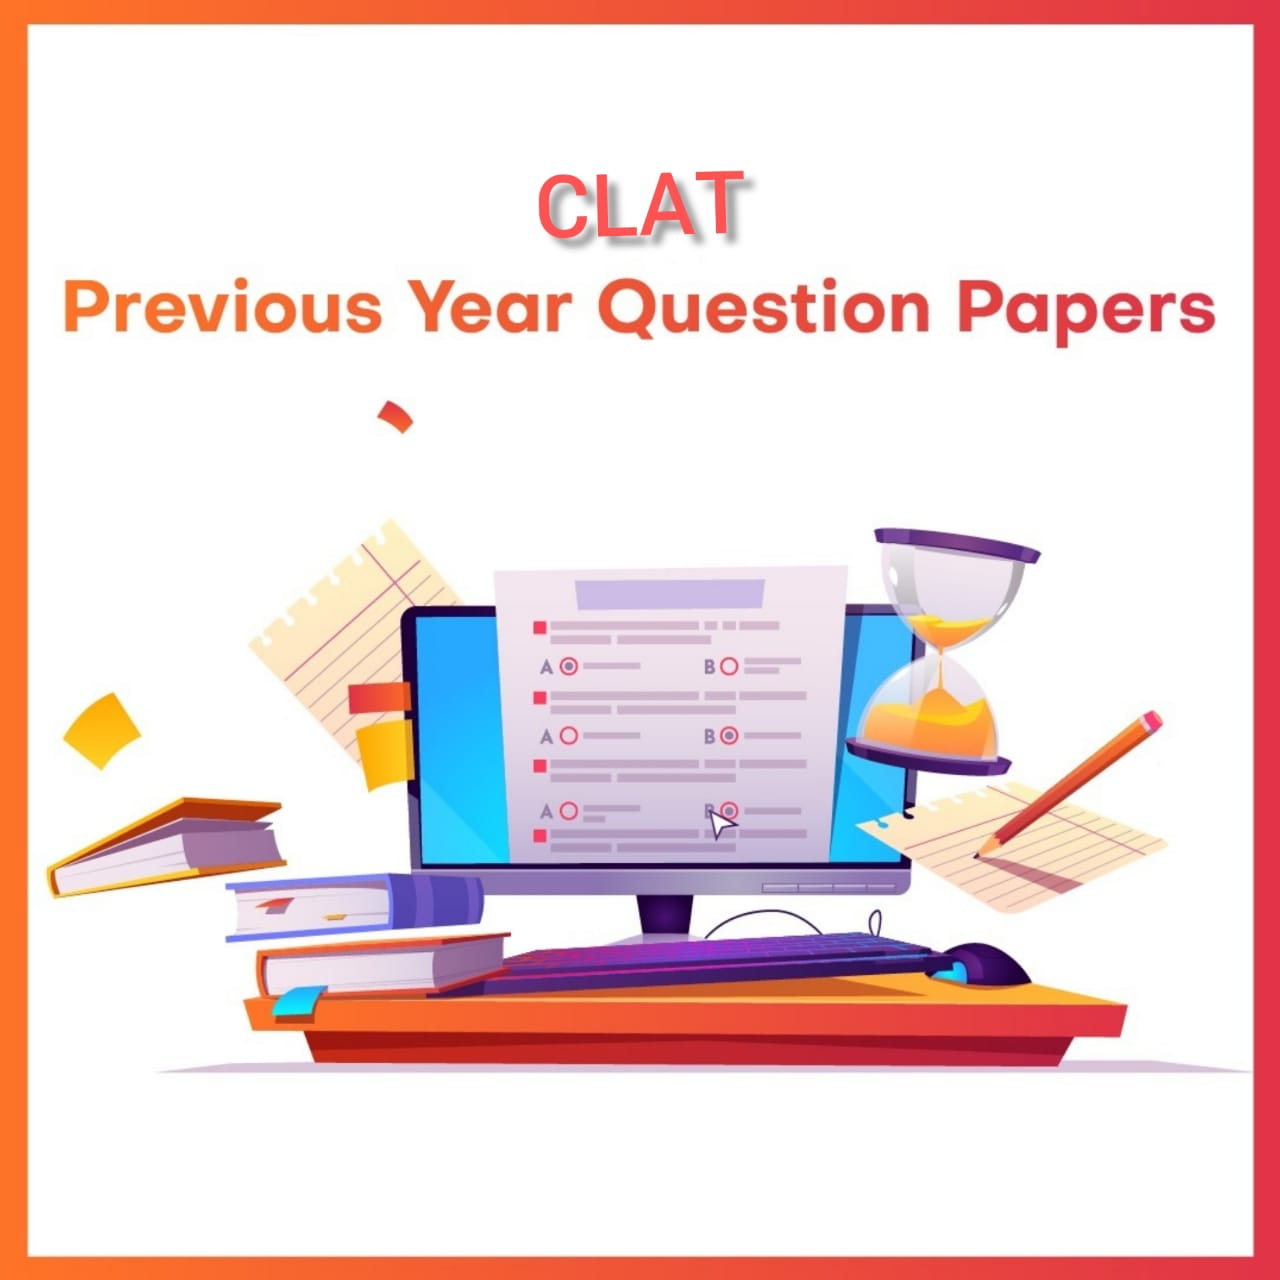 CLAT Previous Year Question Papers : Free Study Material